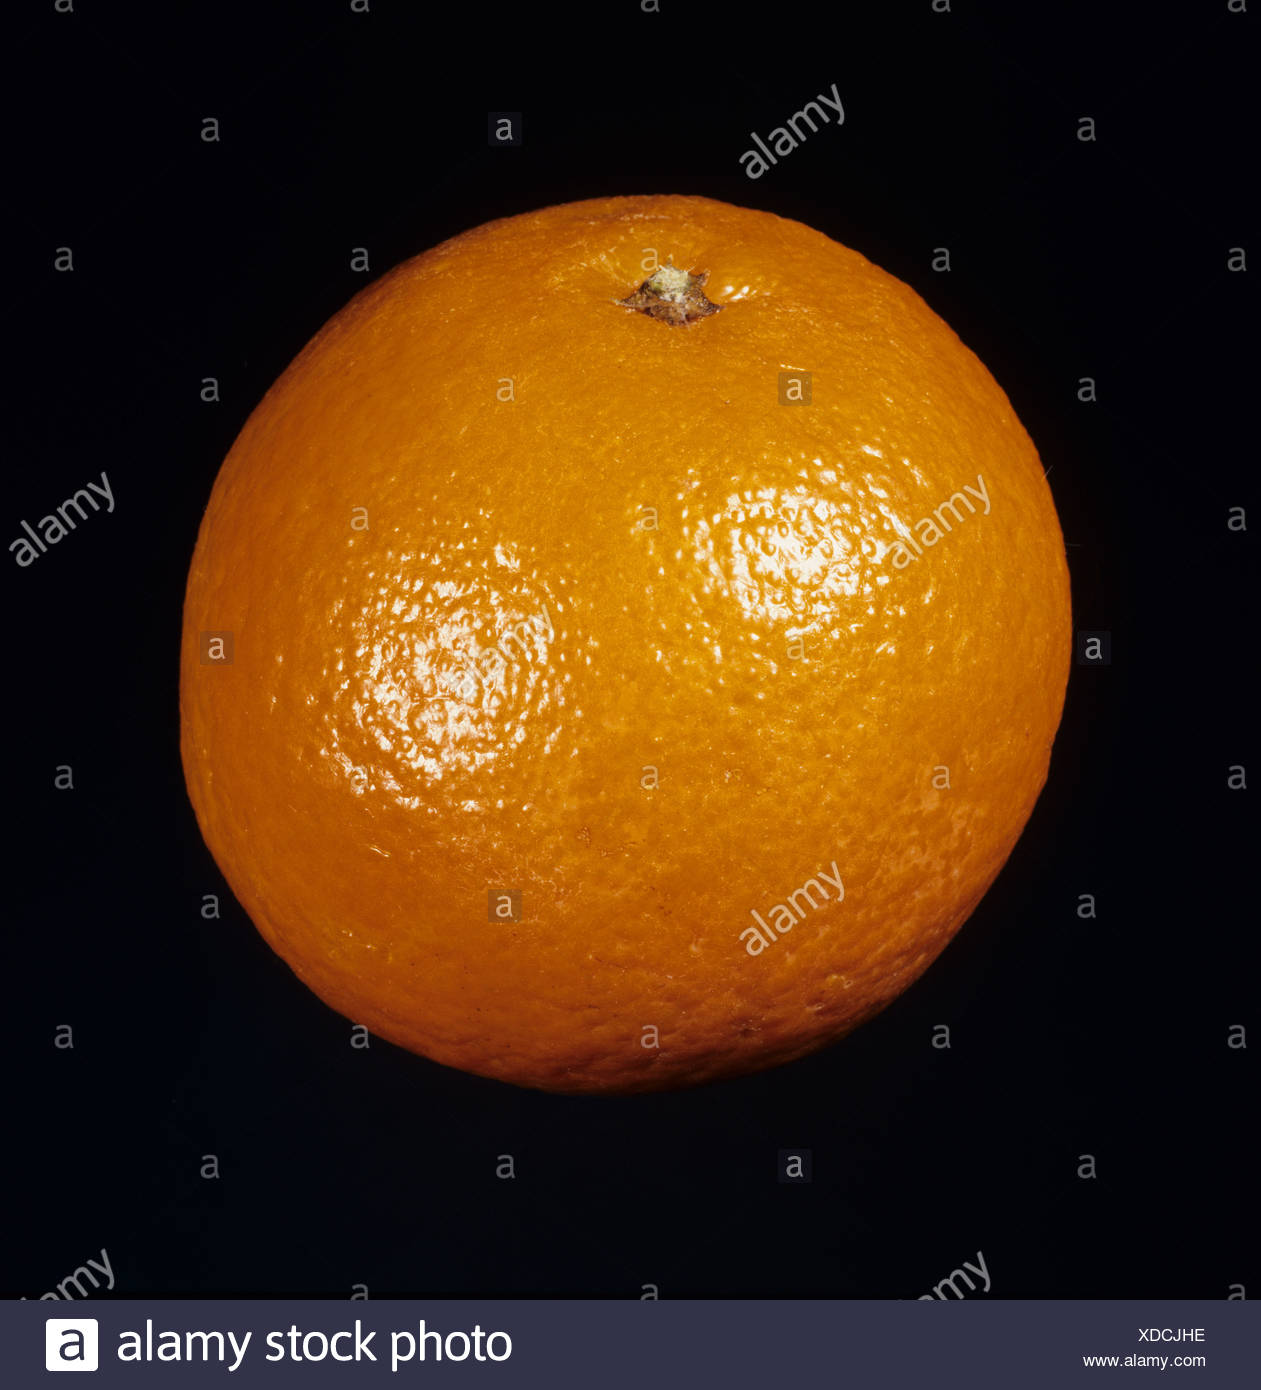 Whole clementine fruit variety Page - Stock Image